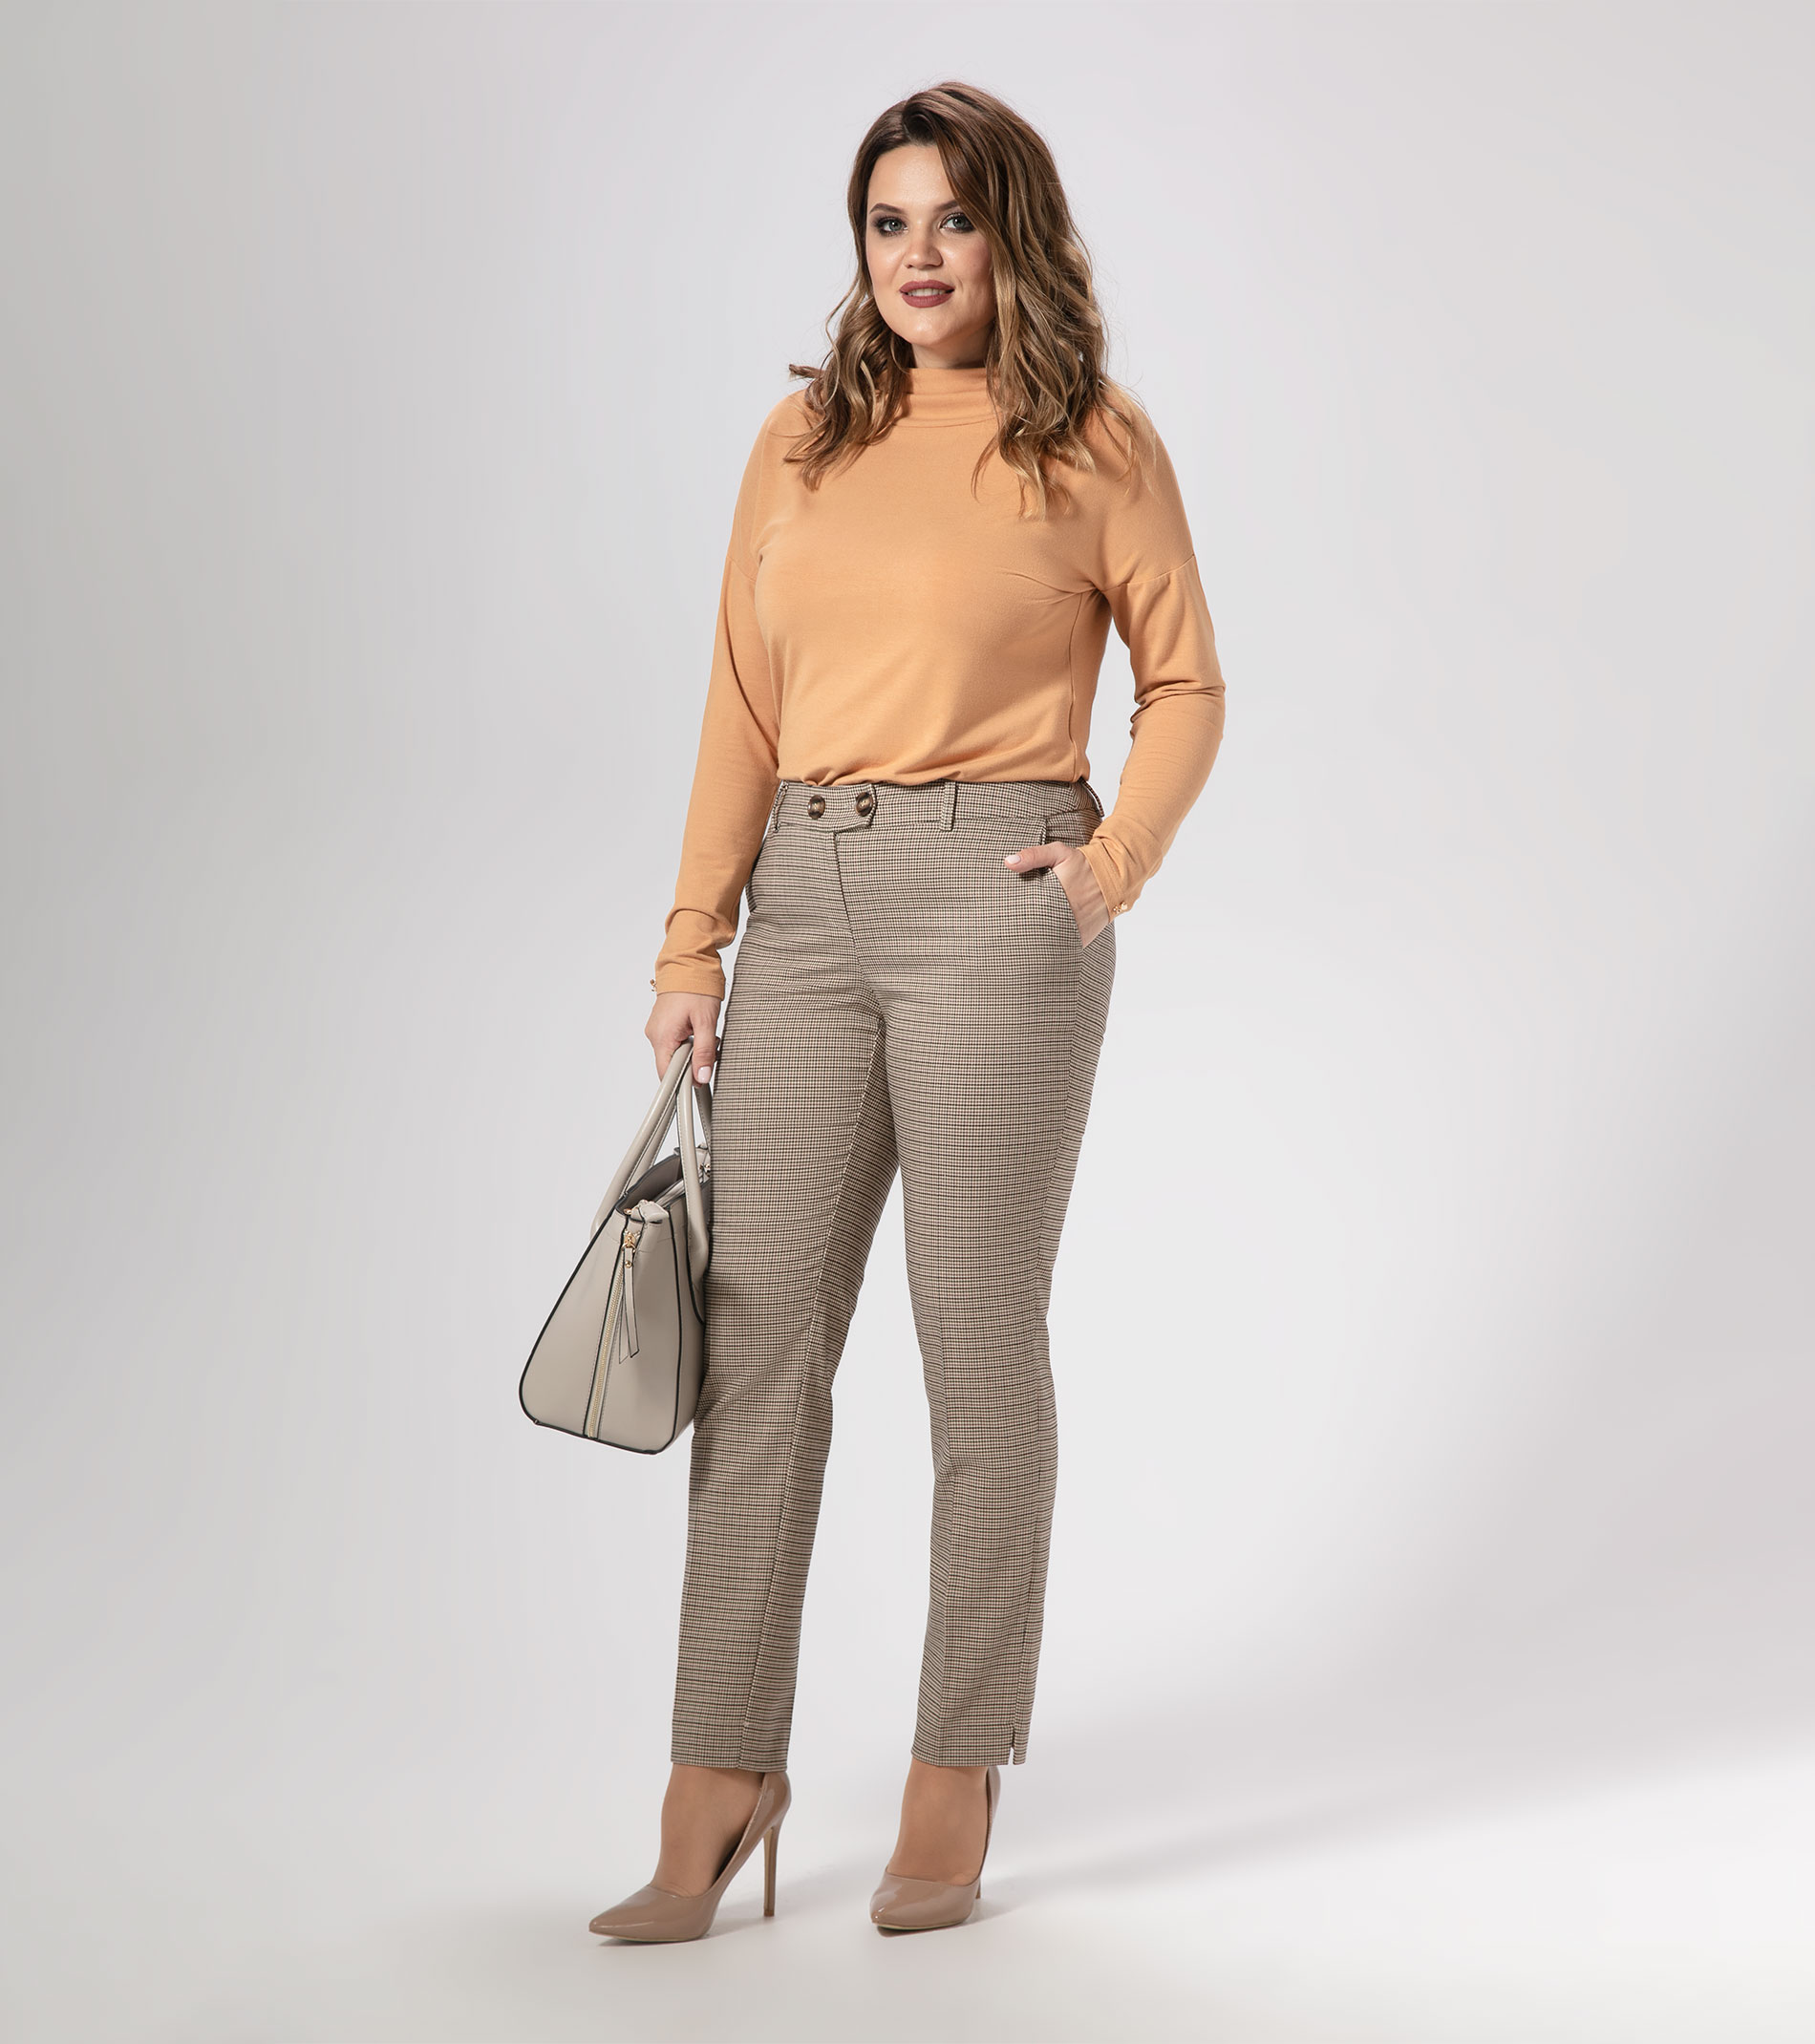 Women's trousers 465660